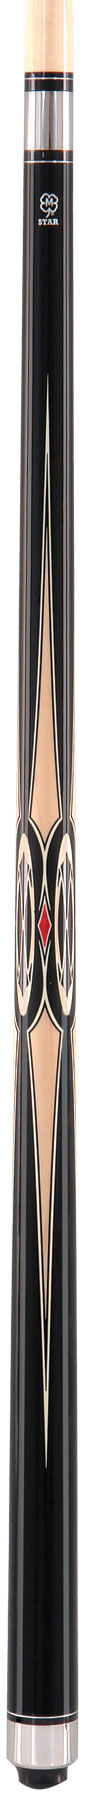 s4 Star Pool Cue by McDermott